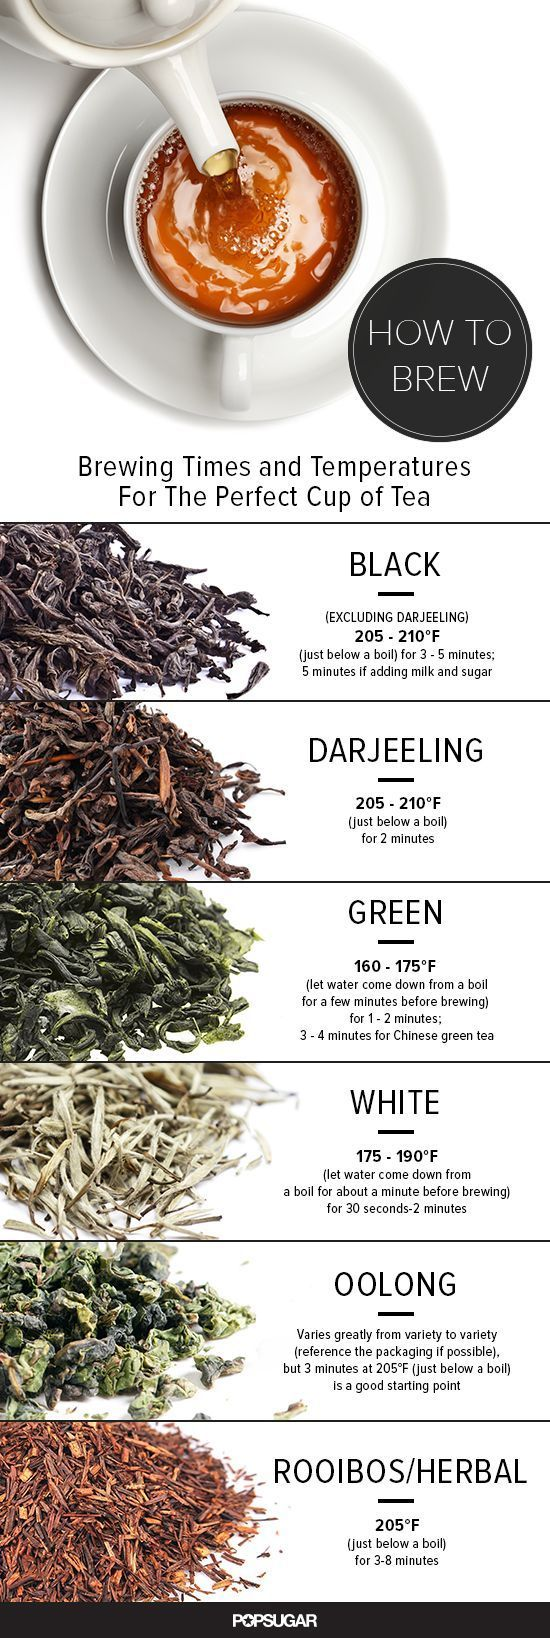 A guide to brewing the perfect cup of tea! How long do you brew the te for? How hot do you make the water? The guesswork can know be taken out of the equation.